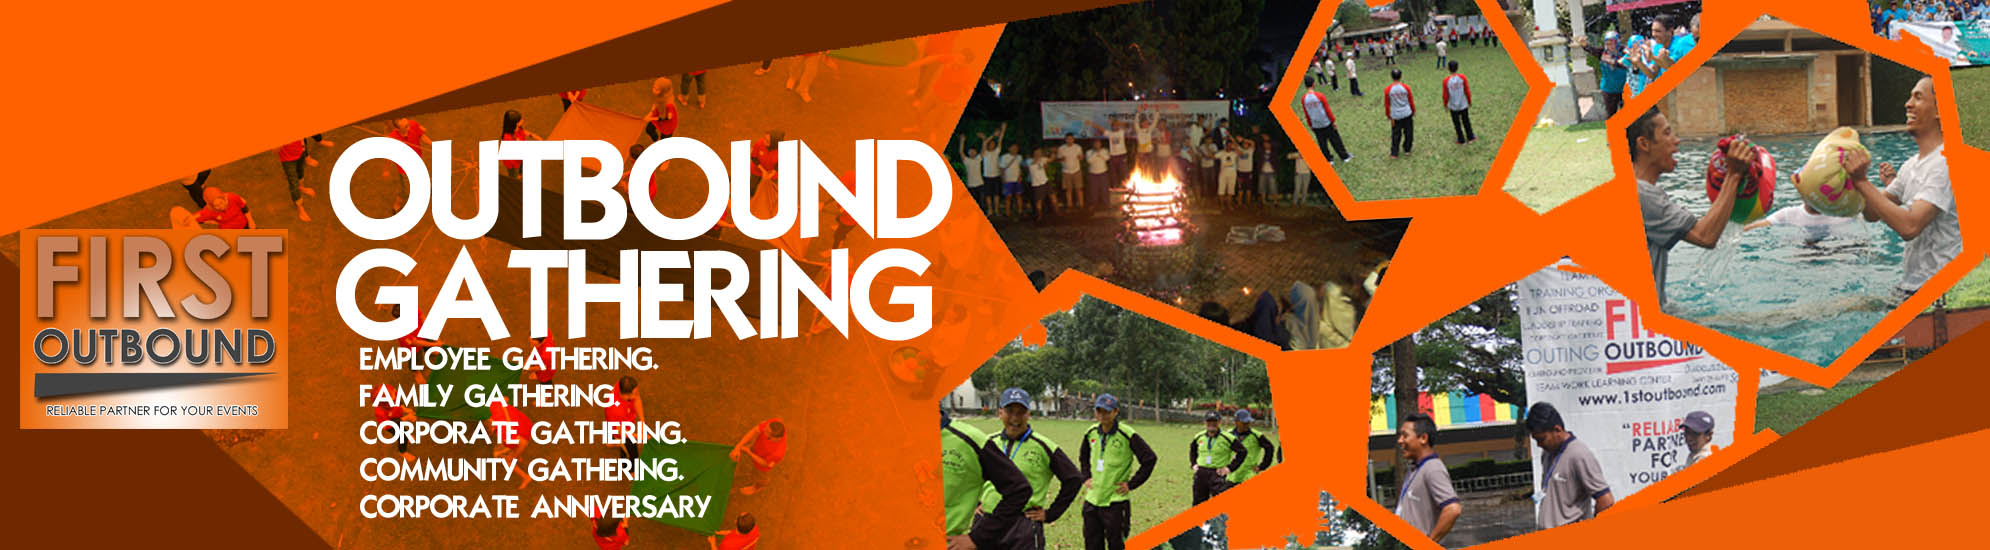 Outbound Gathering & Meeting